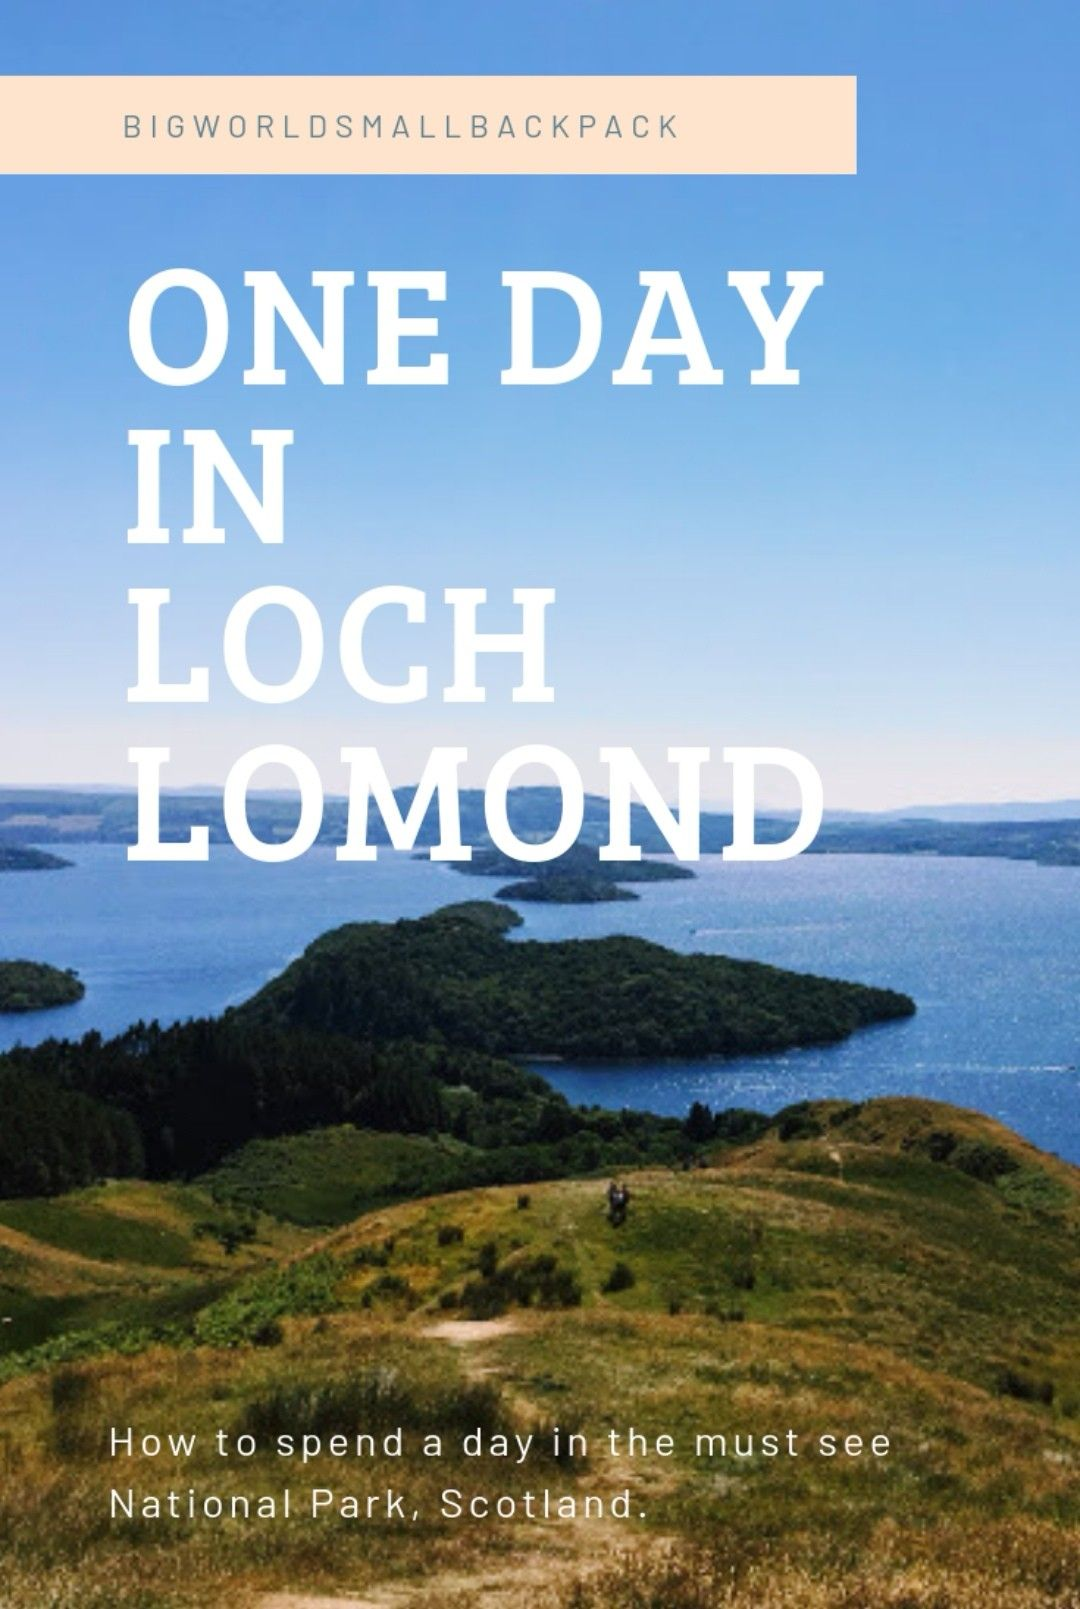 How to spend one day in Loch Lomond, Scotland